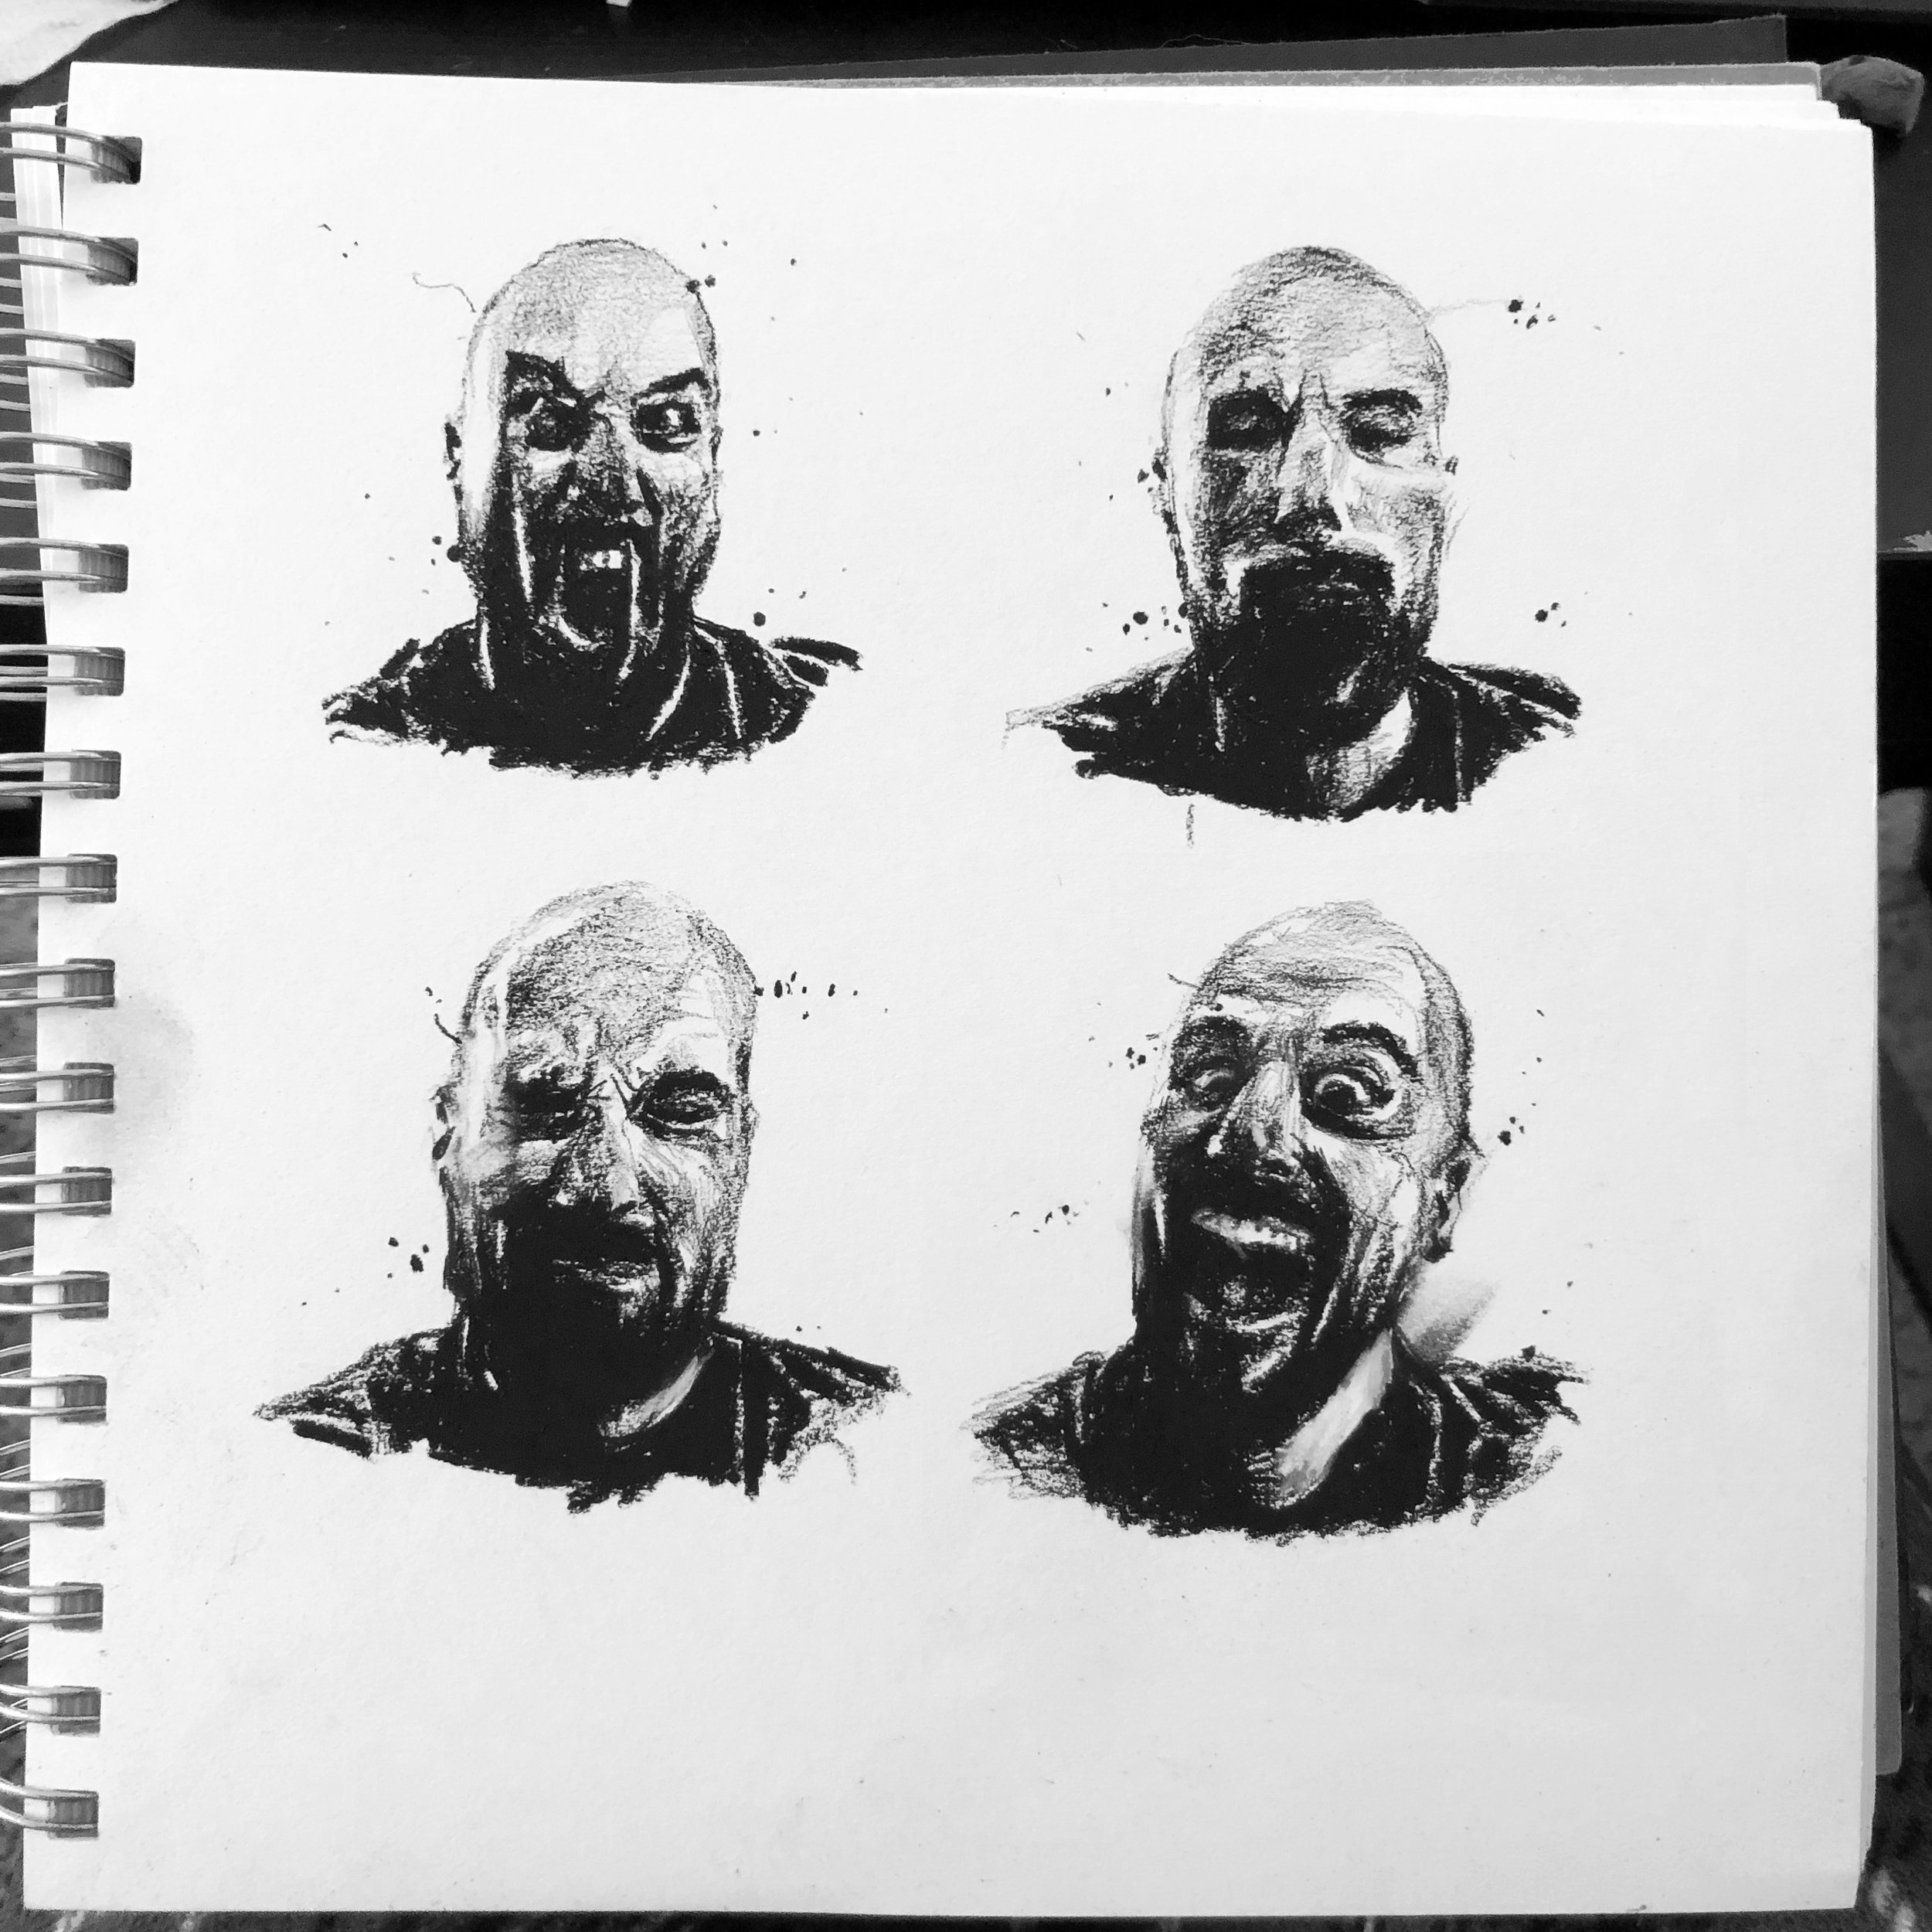 facial expressions - As a training artist I think it's easy to fall into a (to me) bad habit of practicing only cliché, standard facial expressions when practicing portraiture. So I often try to choose unusual expressions to render when I practice this.